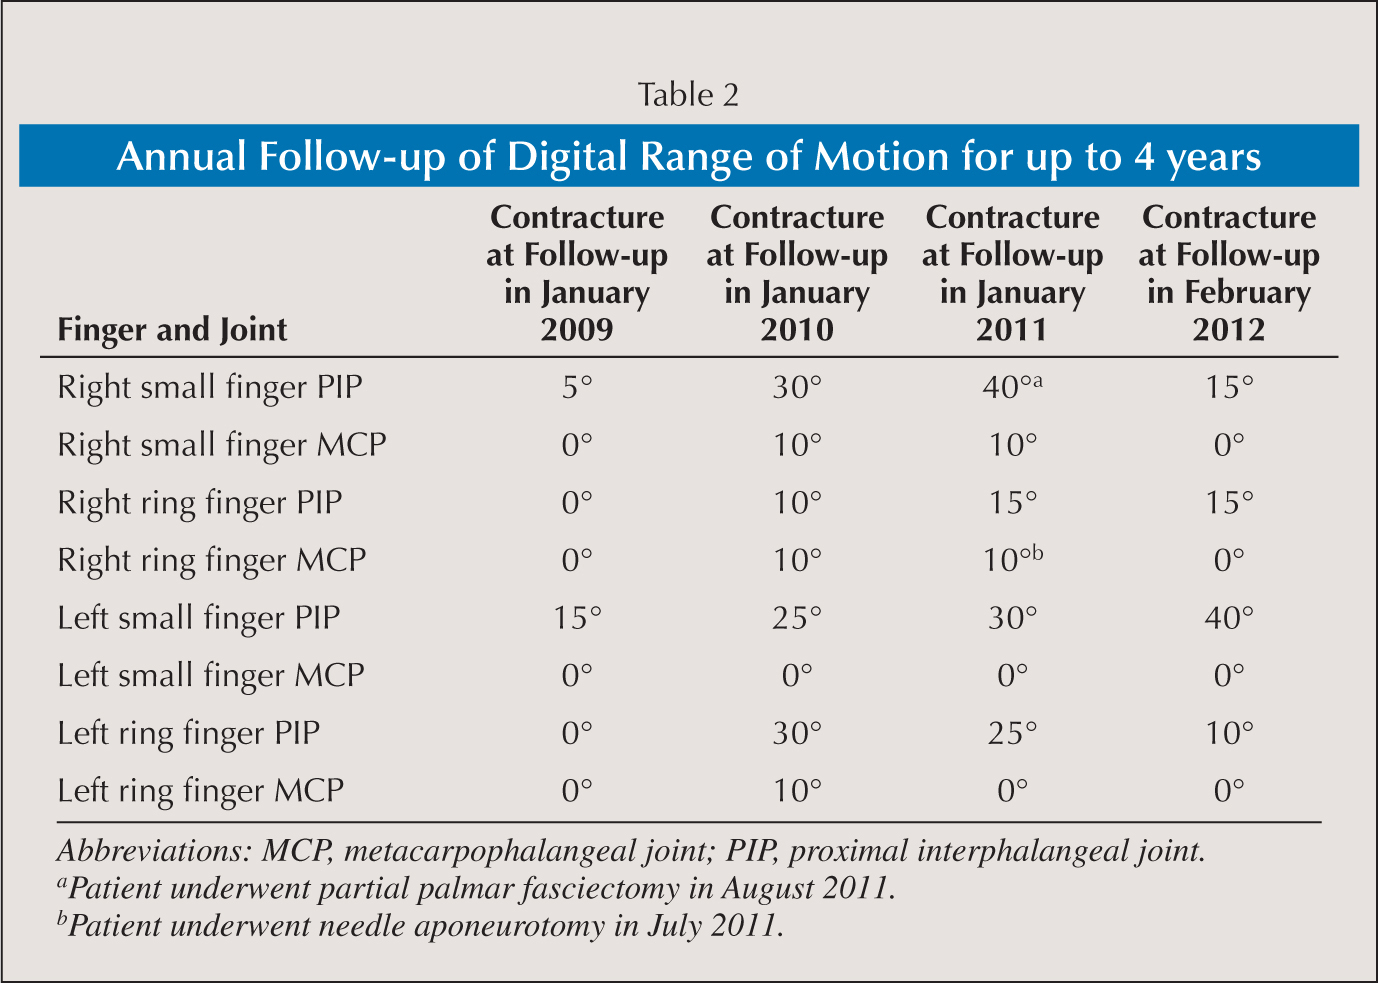 Annual Follow-up of Digital Range of Motion for up to 4 years